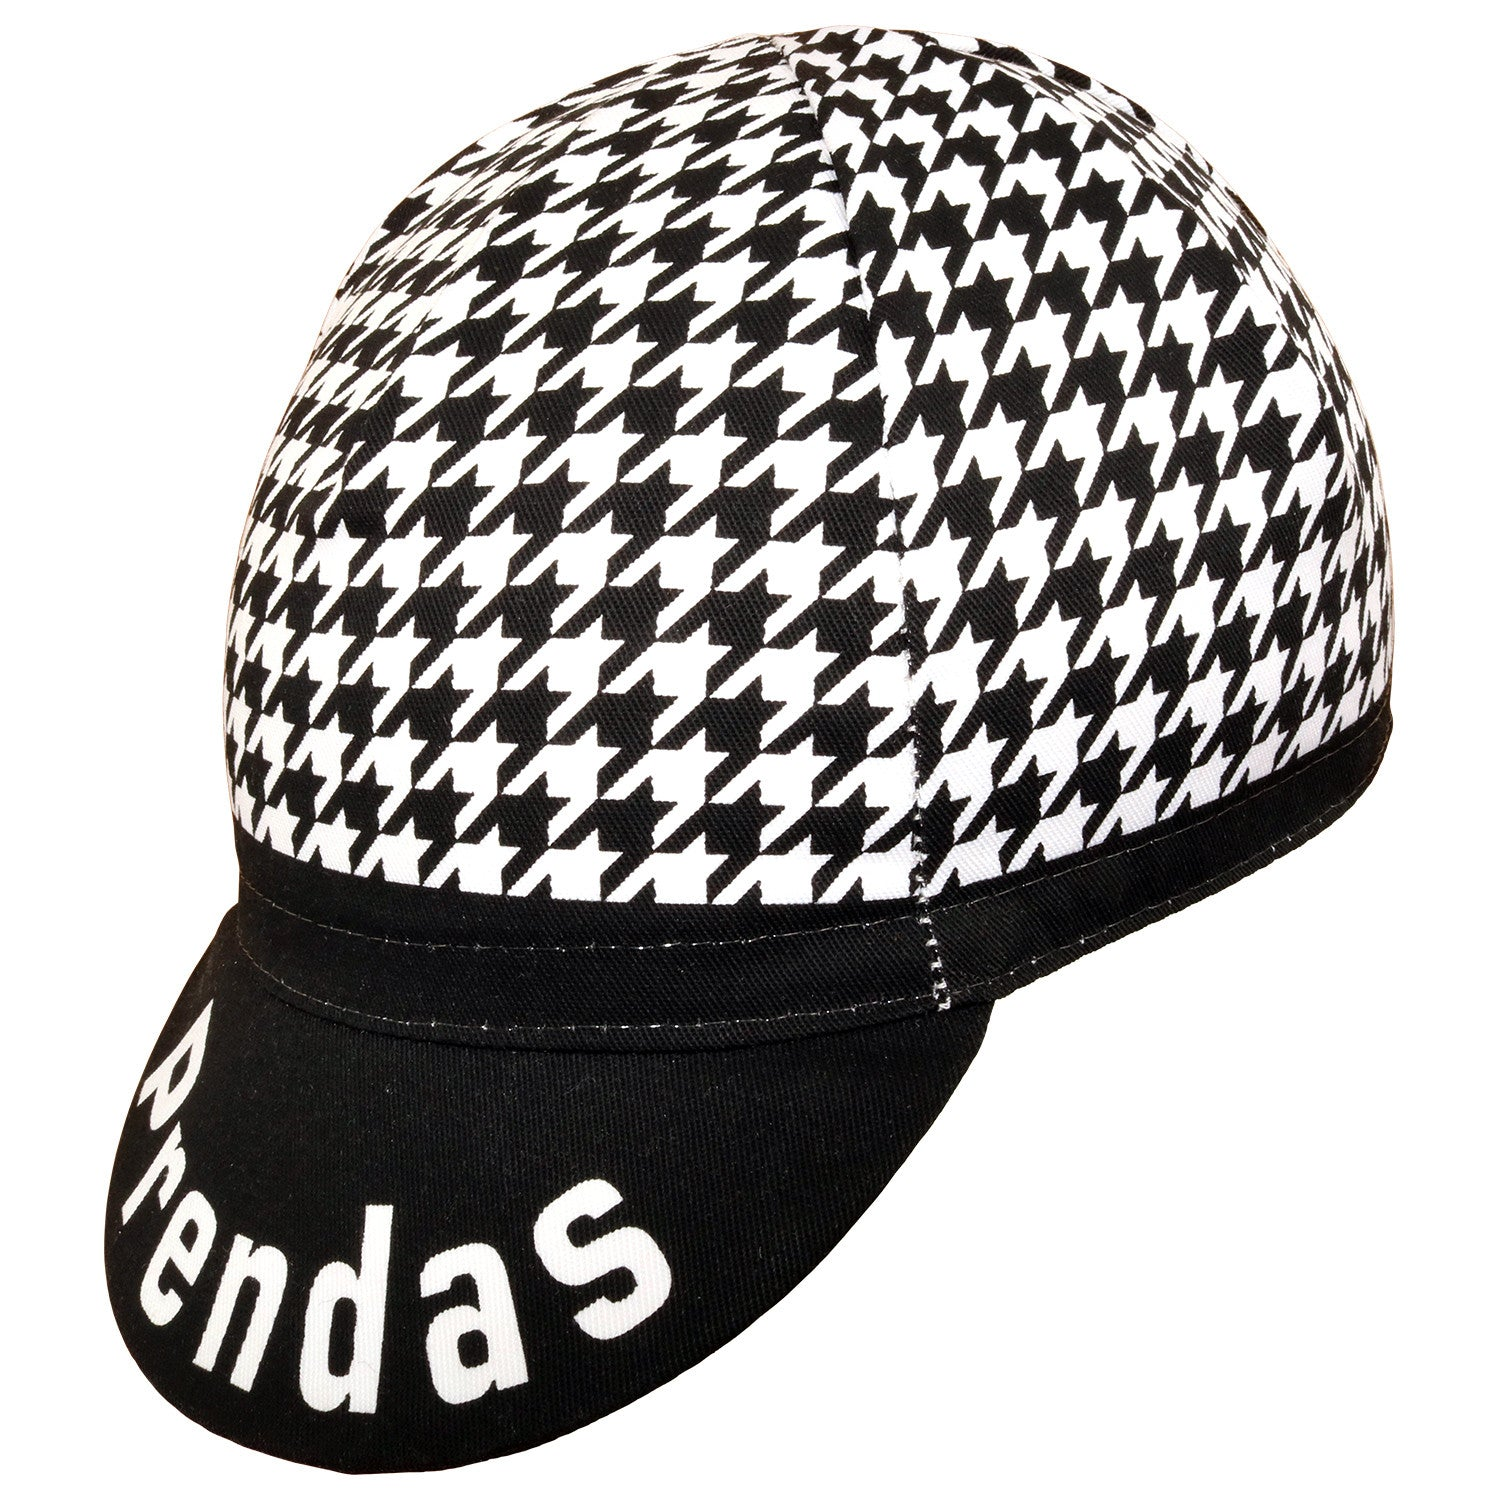 Prendas Houndstooth Cotton Cycling Cap